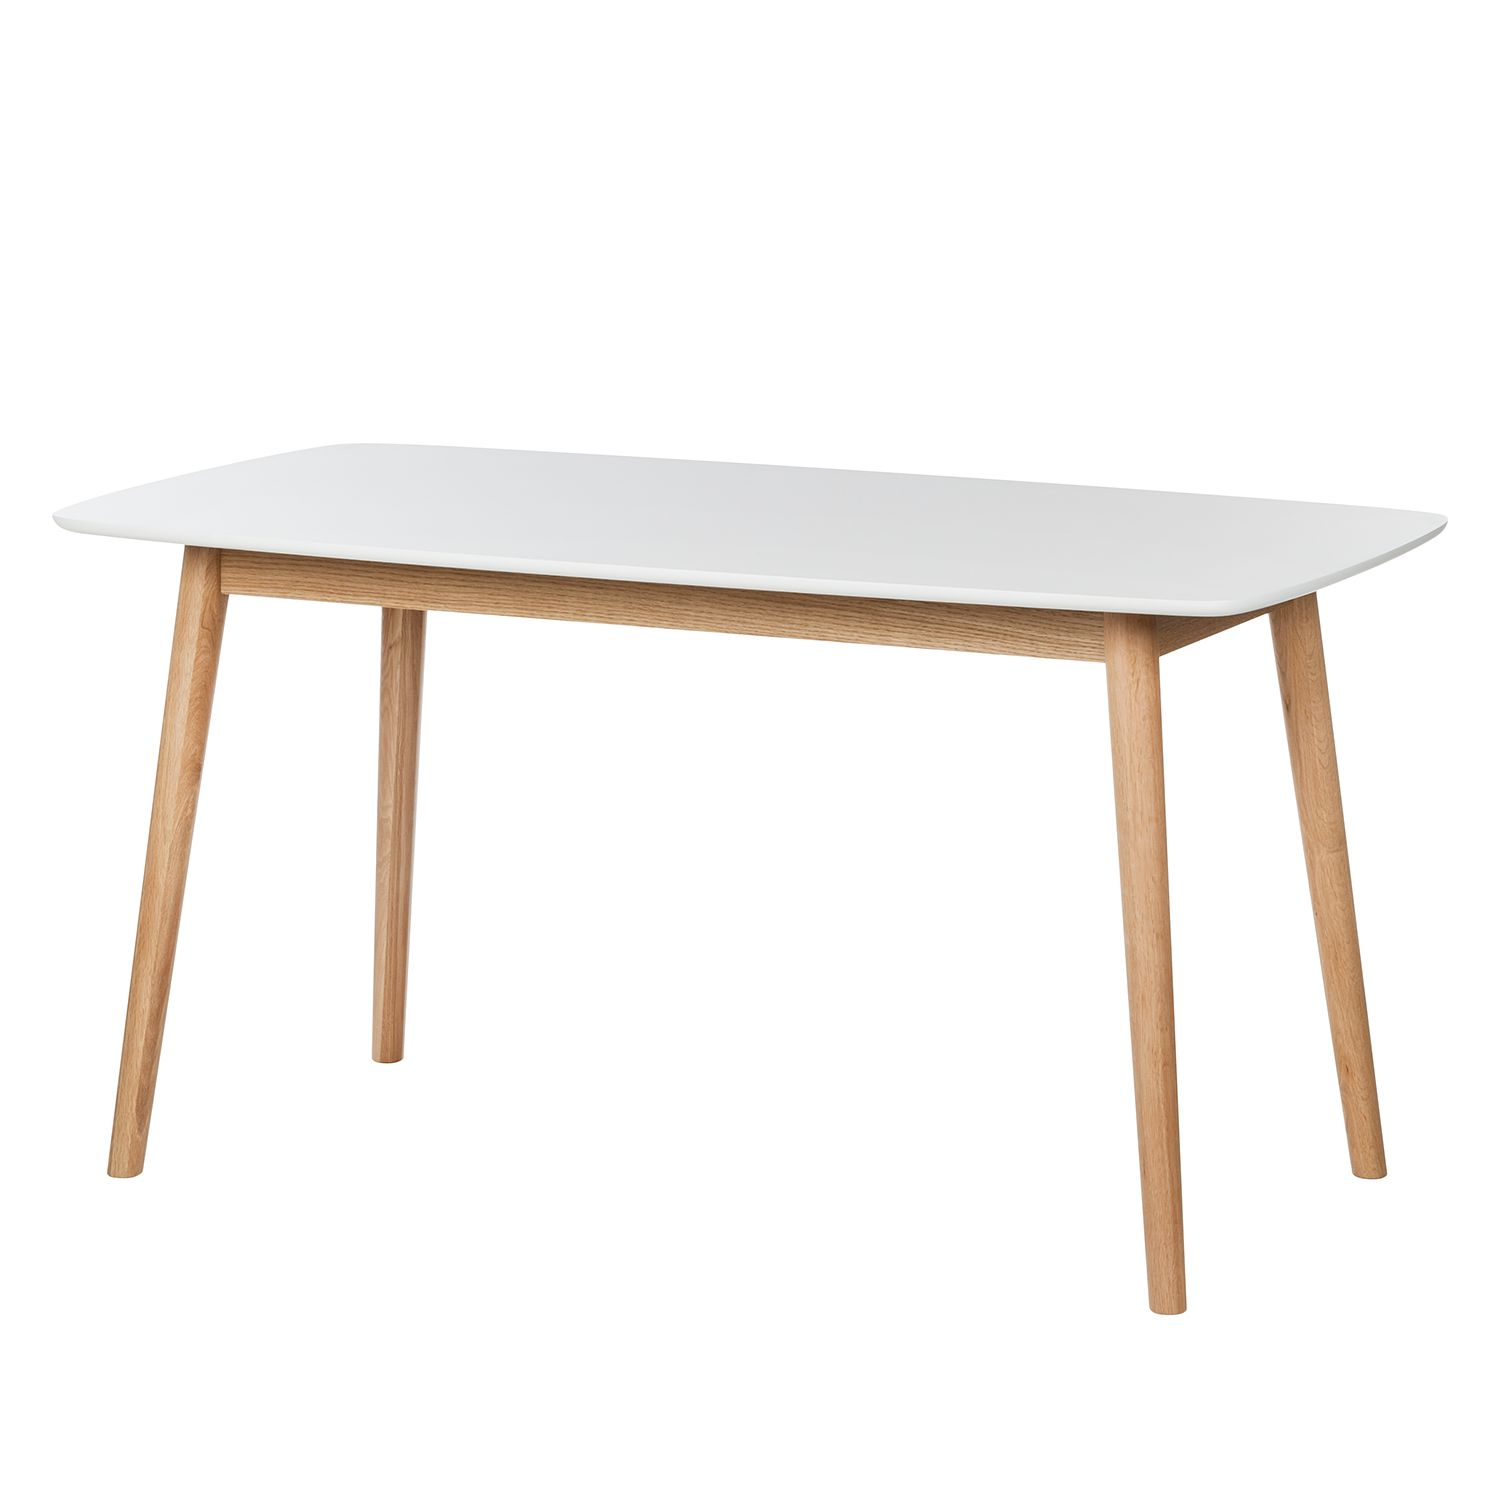 Table à manger Bjelland - Chêne partiellement massif - Blanc - 150 x 80cm, Morteens